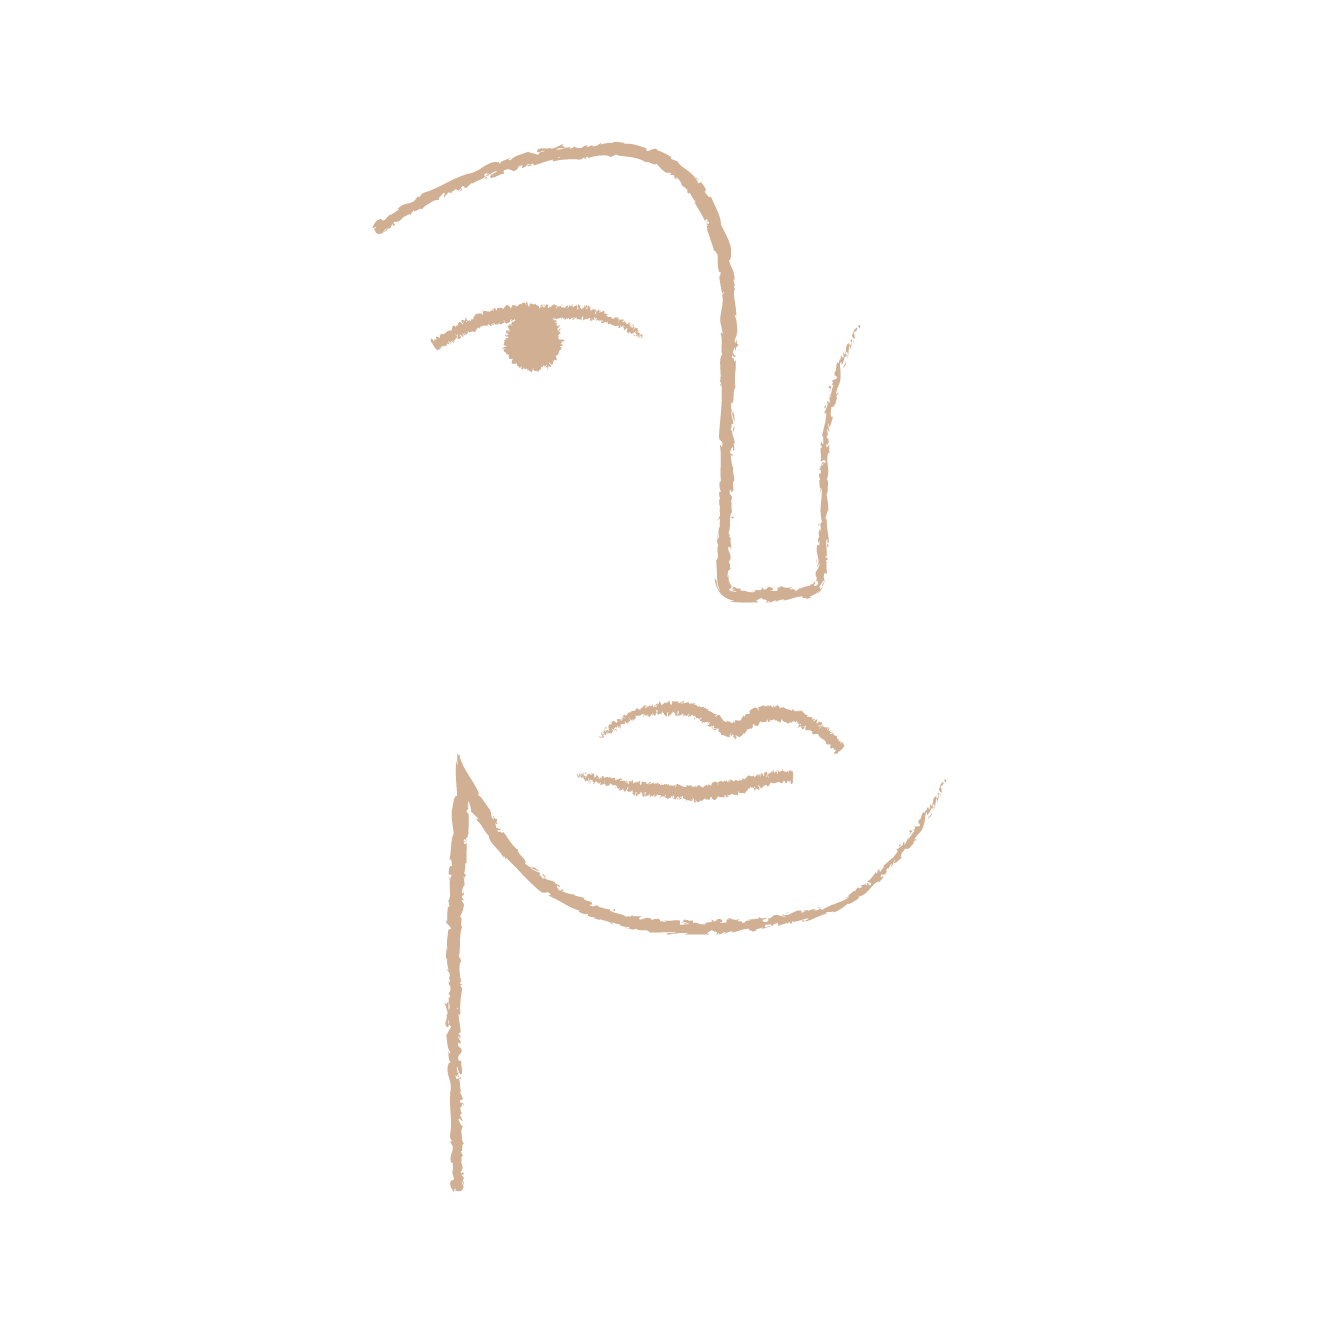 Face-Line-Art-Desiged-By-Stella.png